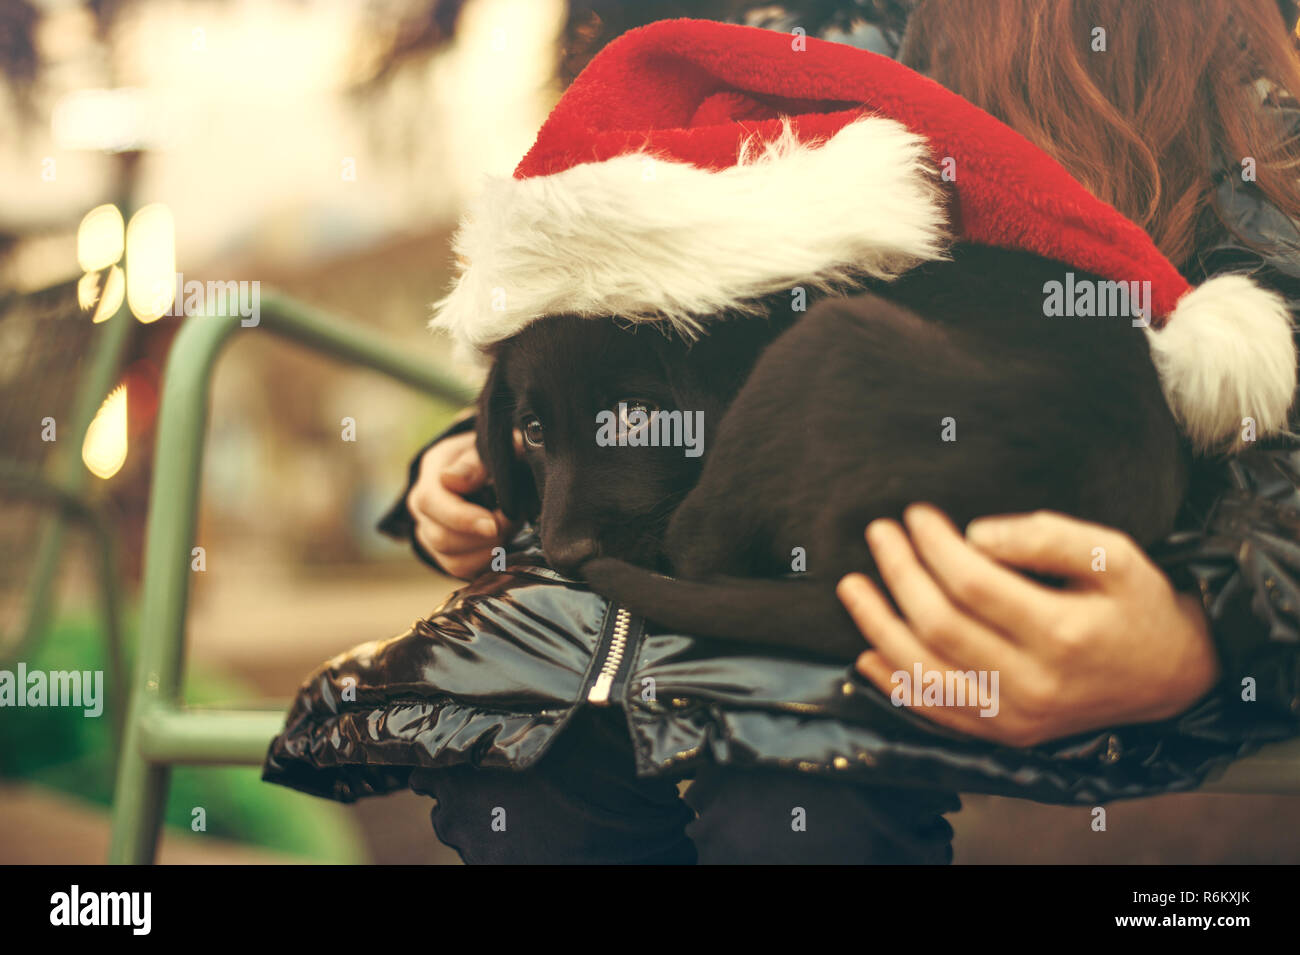 Child holds a black labrador puppy wearing a Santa Claus costume - Stock Image